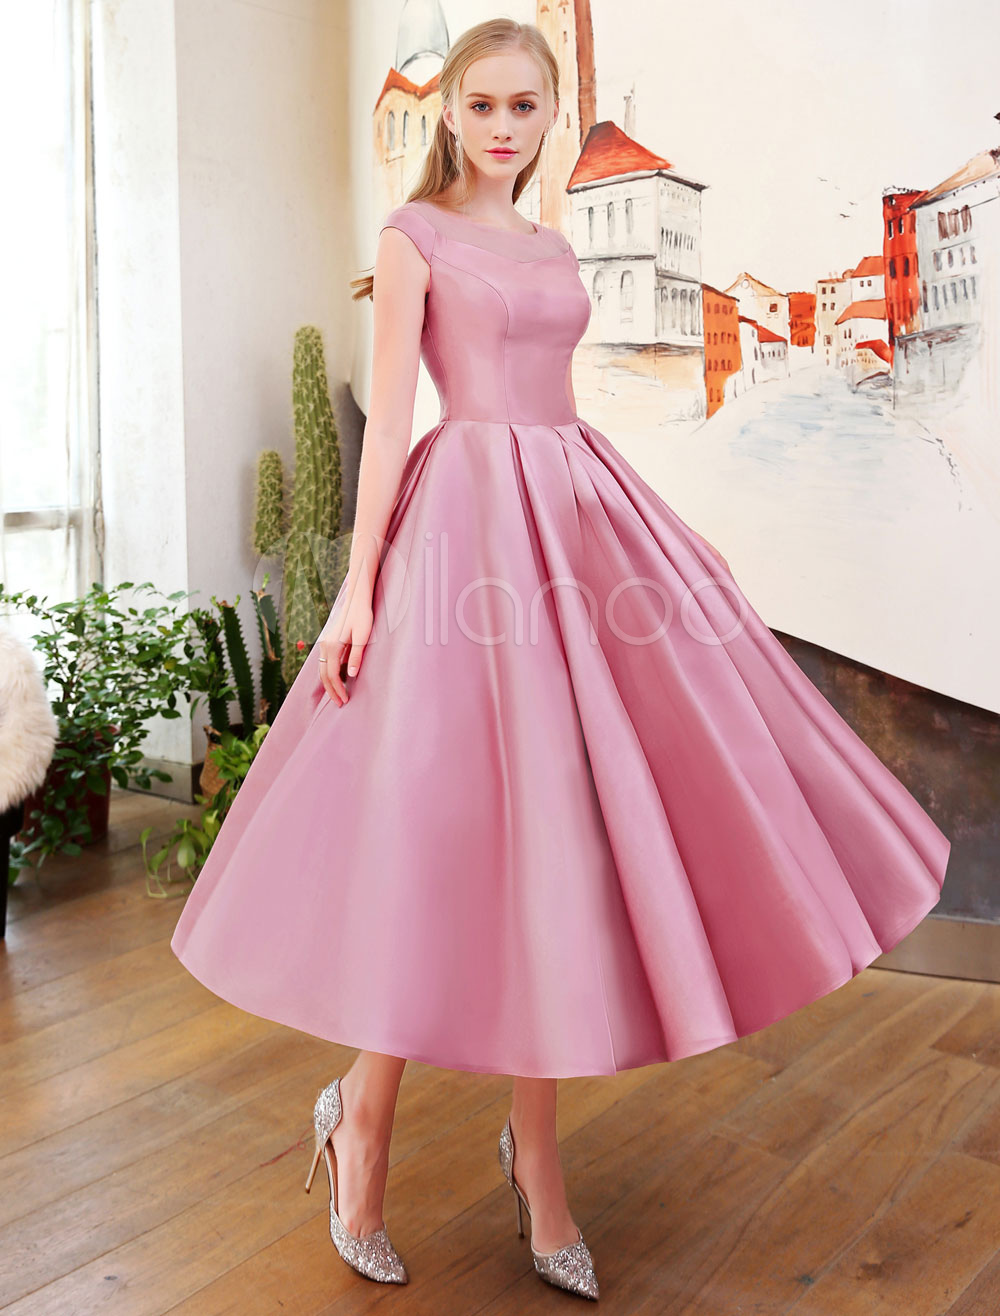 Short Prom Dresses Cameo Pink Satin Homecoming Dress Pleated 1950's Vintage Illusion Fit And Flare Tea Length Cocktail Party Dresses (Wedding) photo